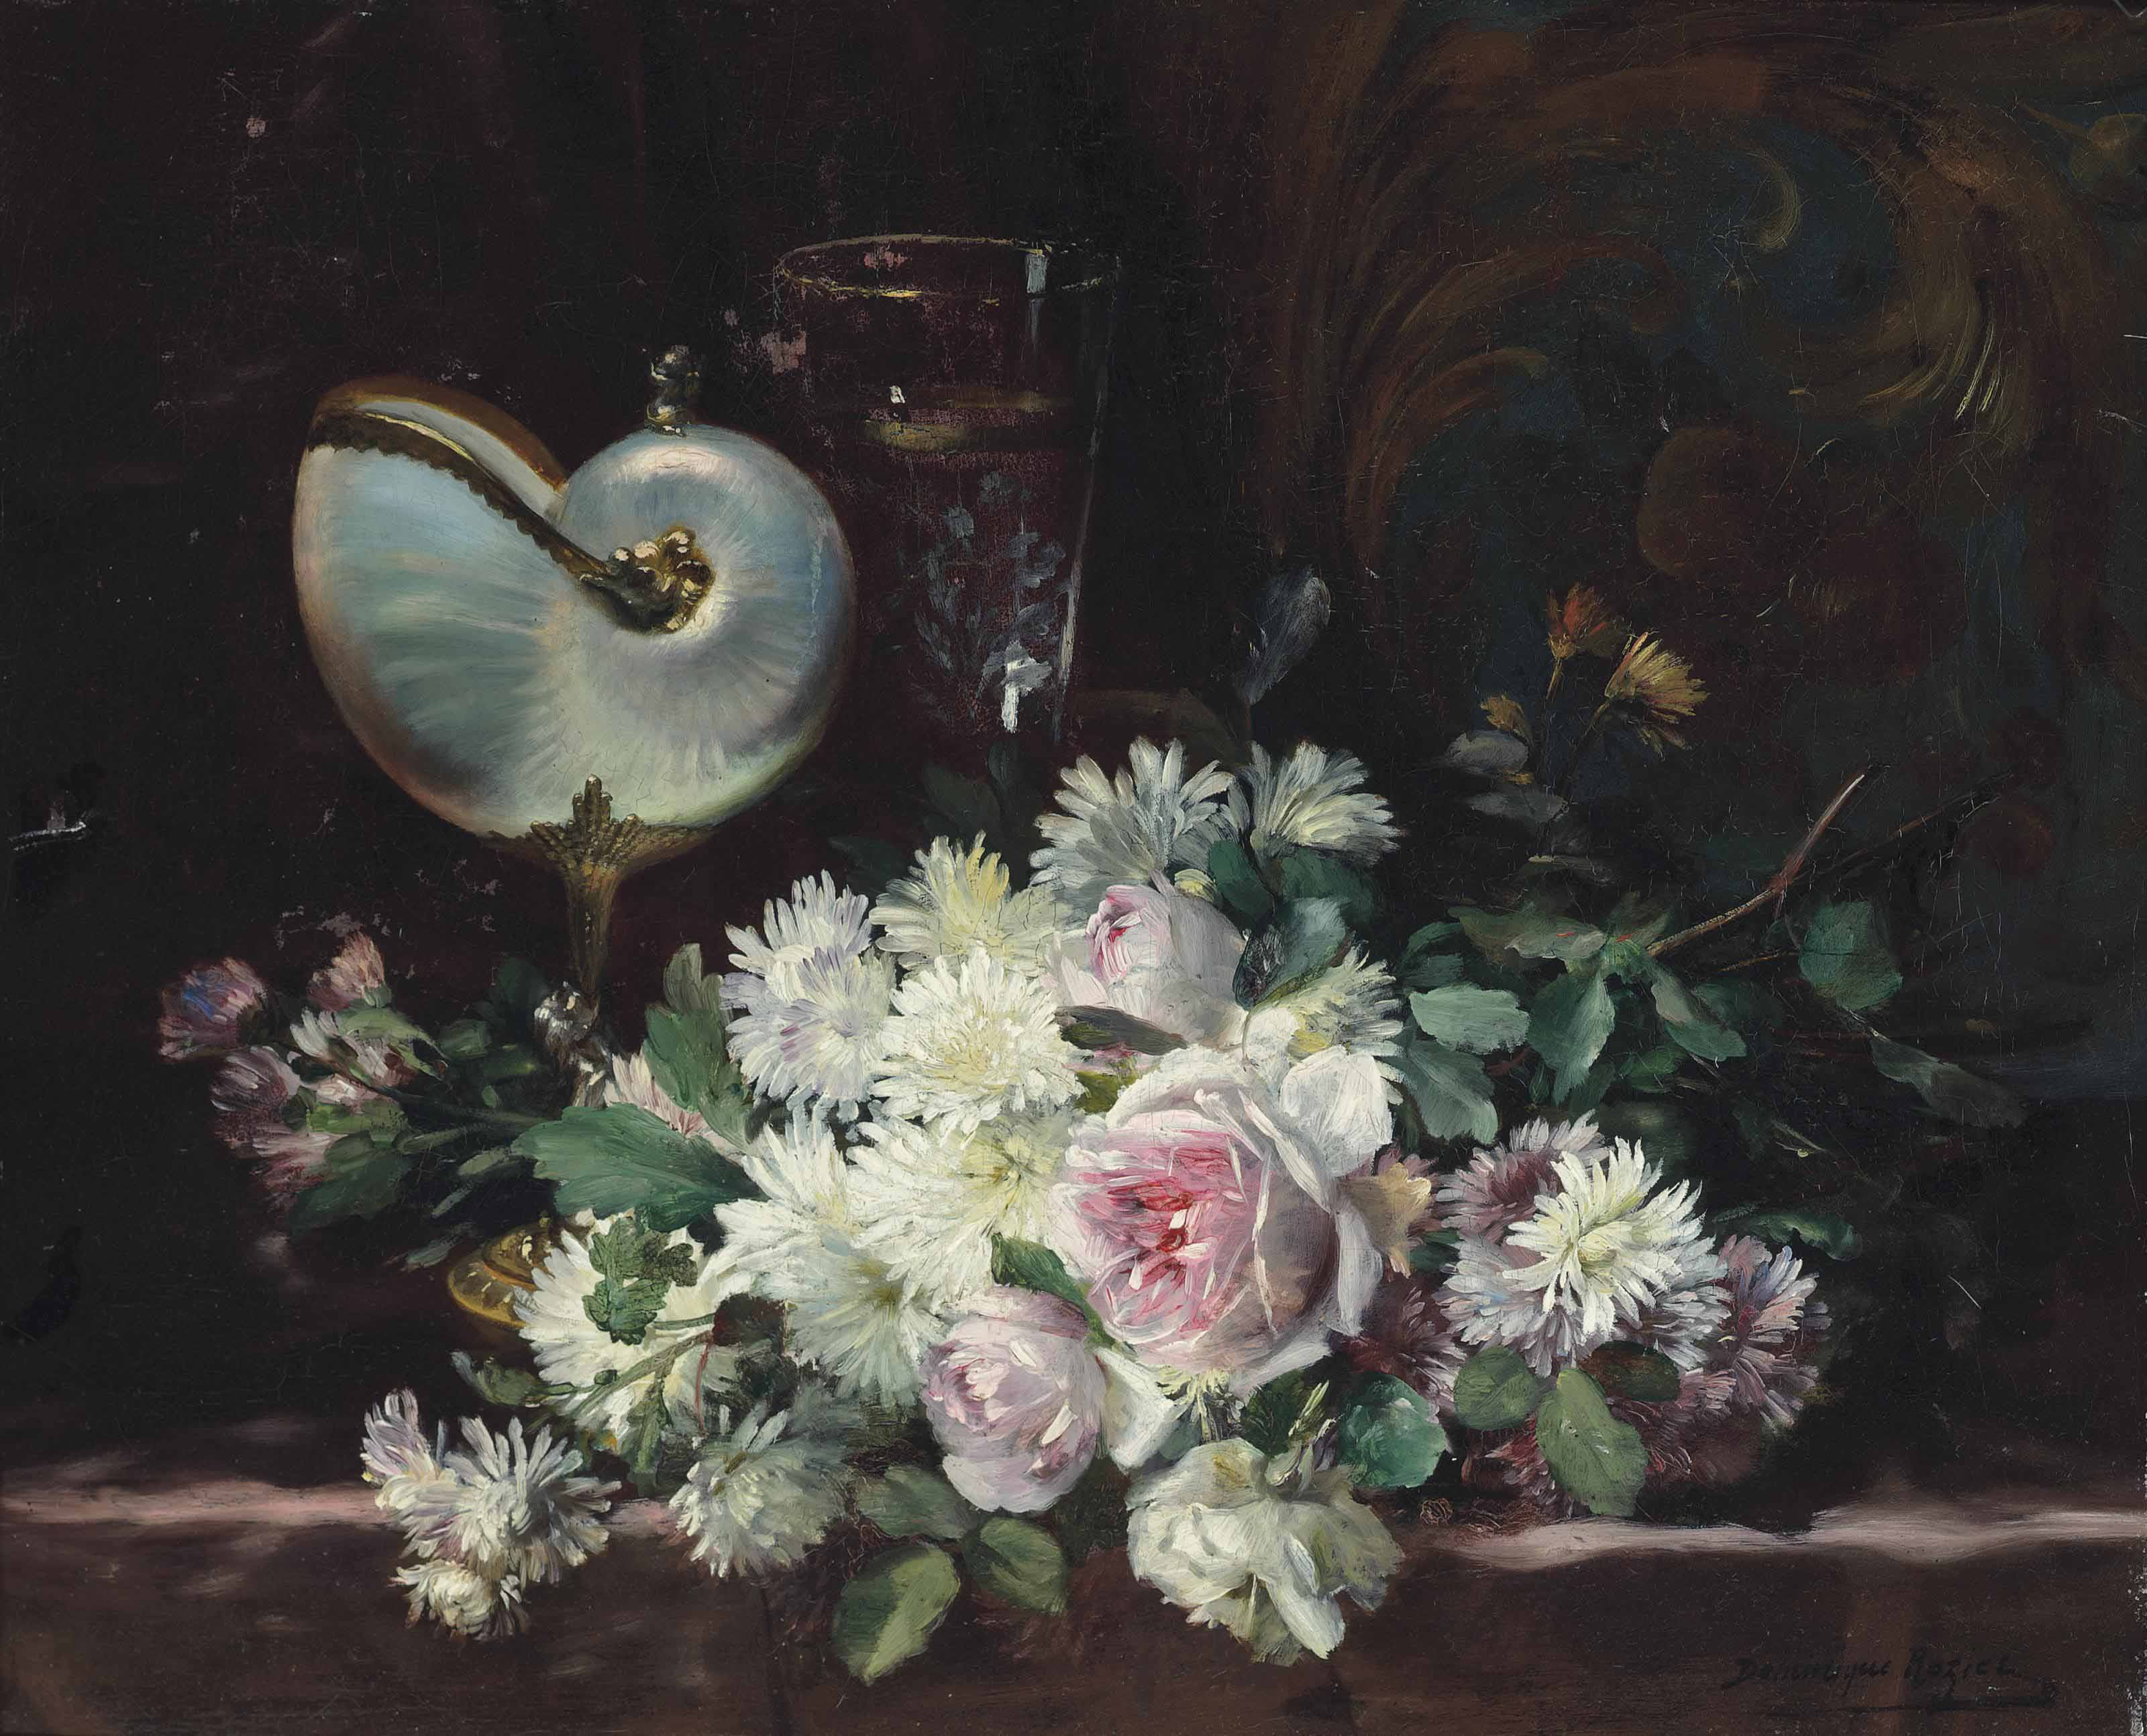 A nautilus shell, a glass and a bouquet of roses and chrysanthemums on a ledge